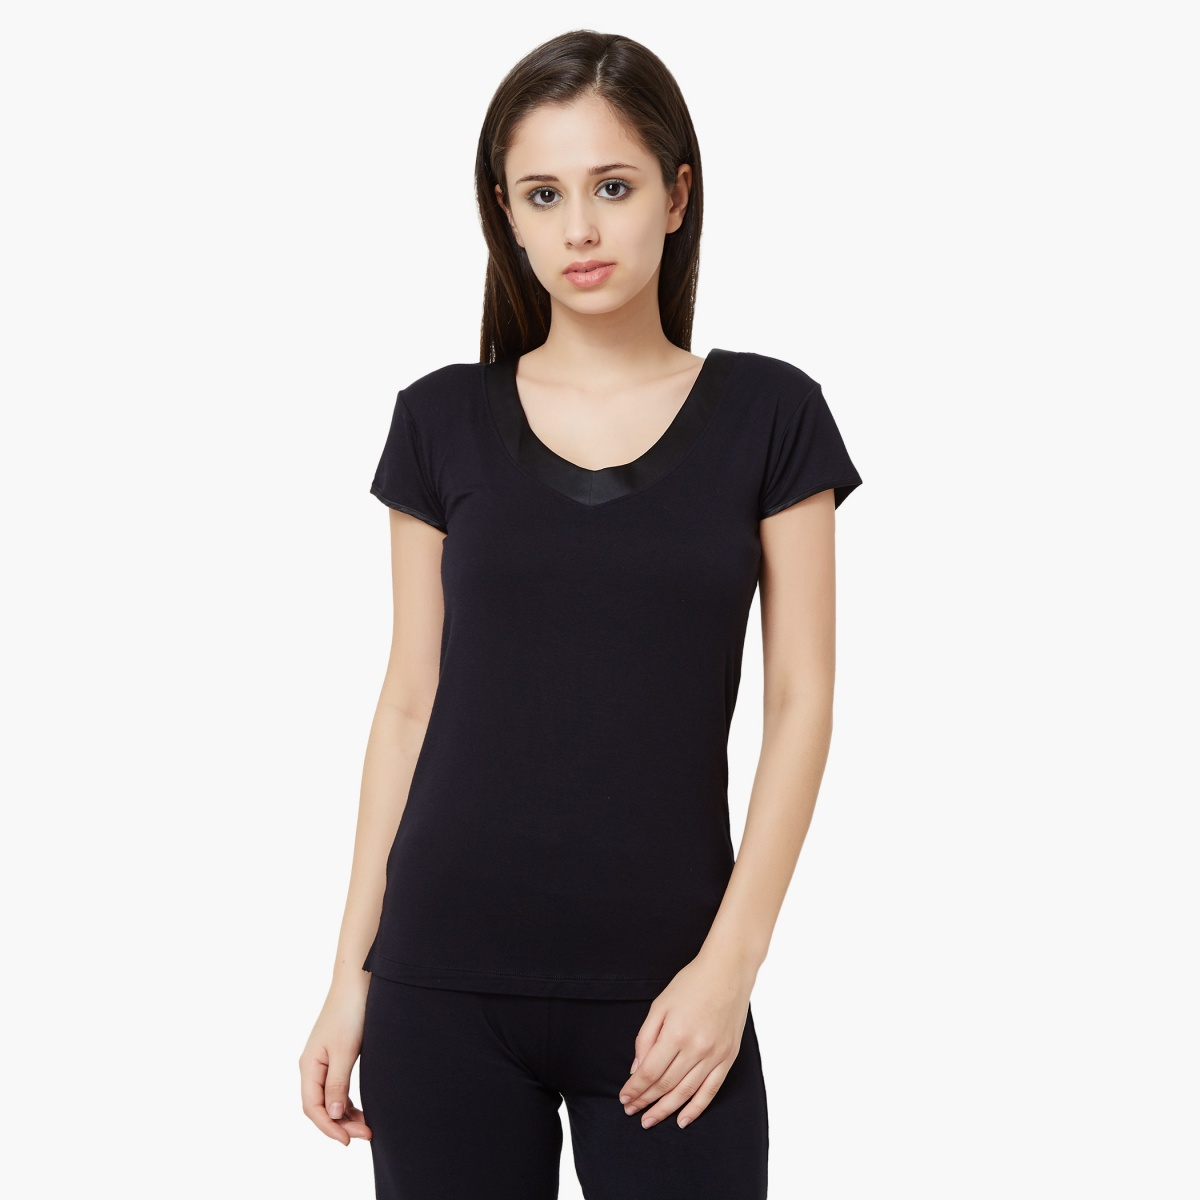 AMANTE Satin Trim Sleepwear T-Shirt